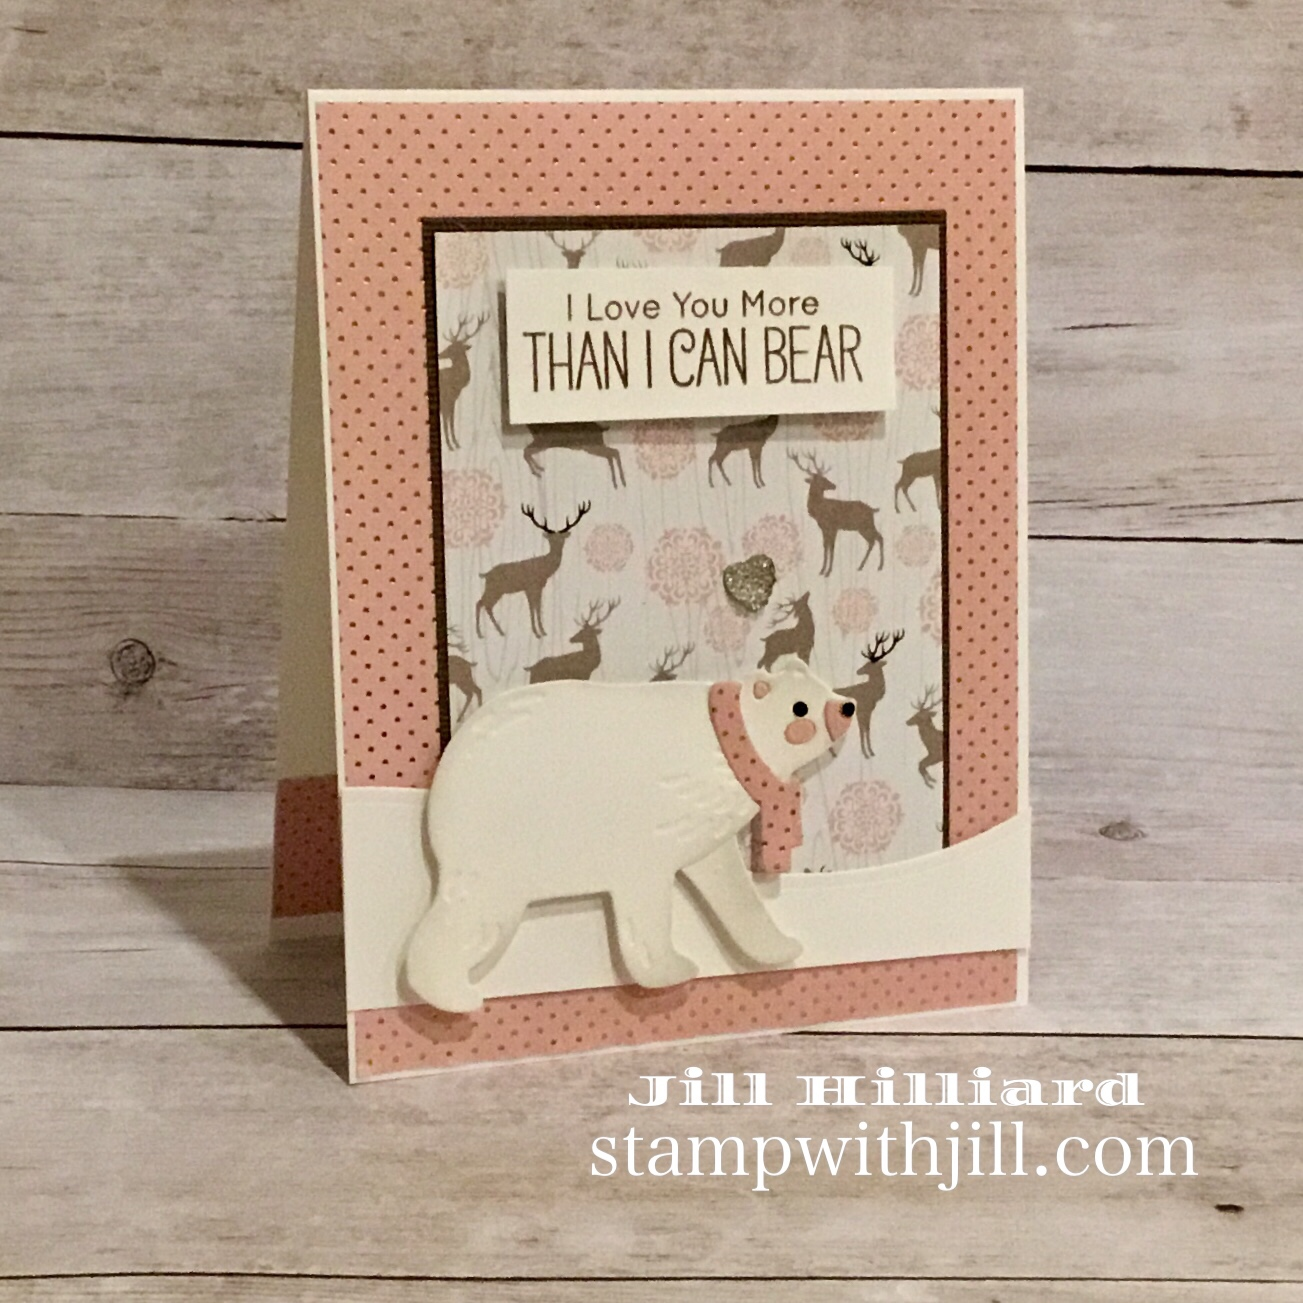 Winter Wishes Spellbinders card kit Dec 2018, Stamp with Jill, Polar bear card.